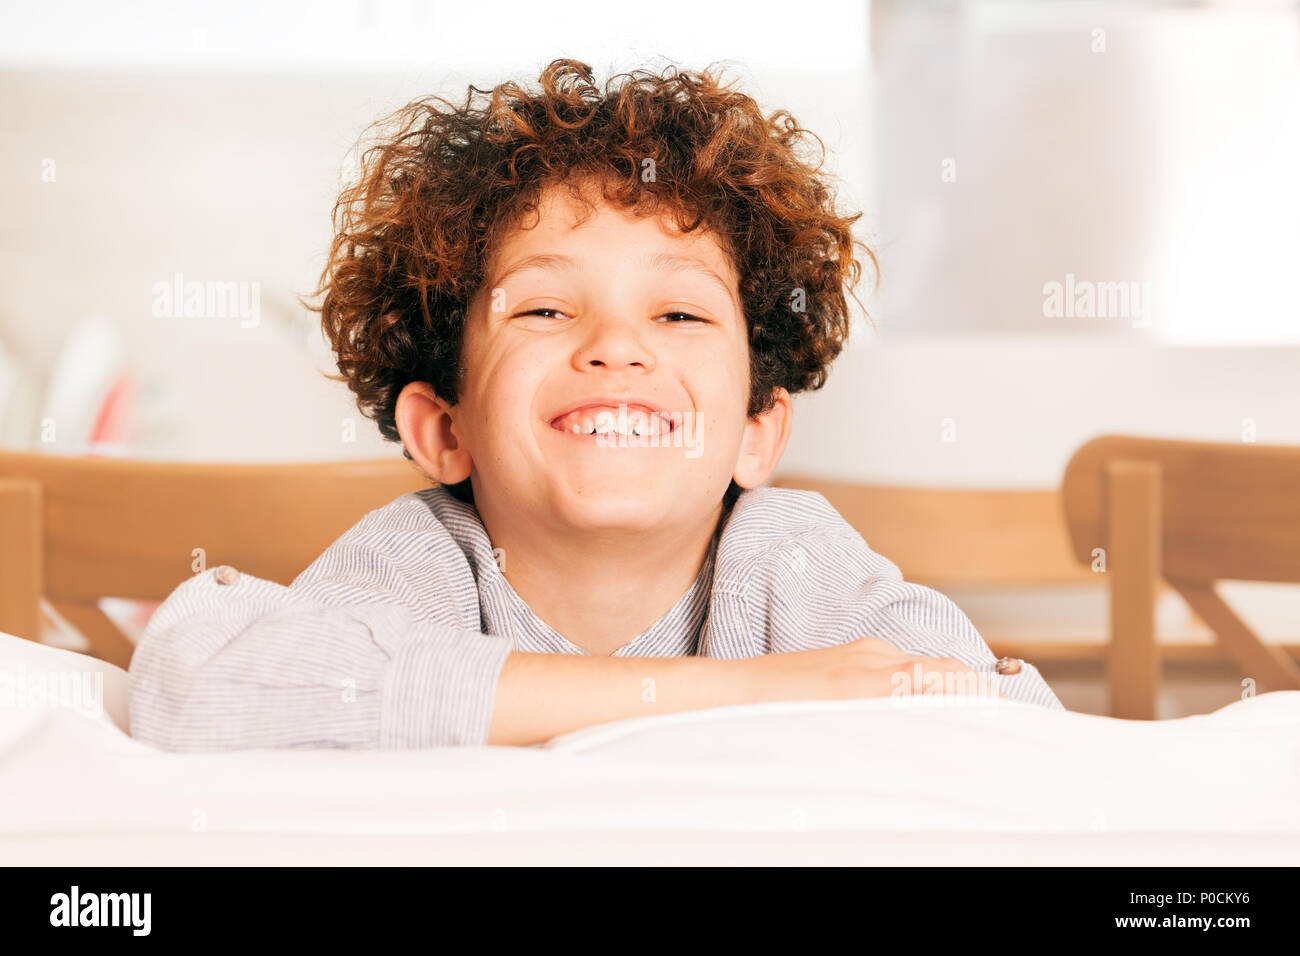 Portrait of cute young boy with curly hair sitting on the couch, laughing and looking at camera - Stock Image